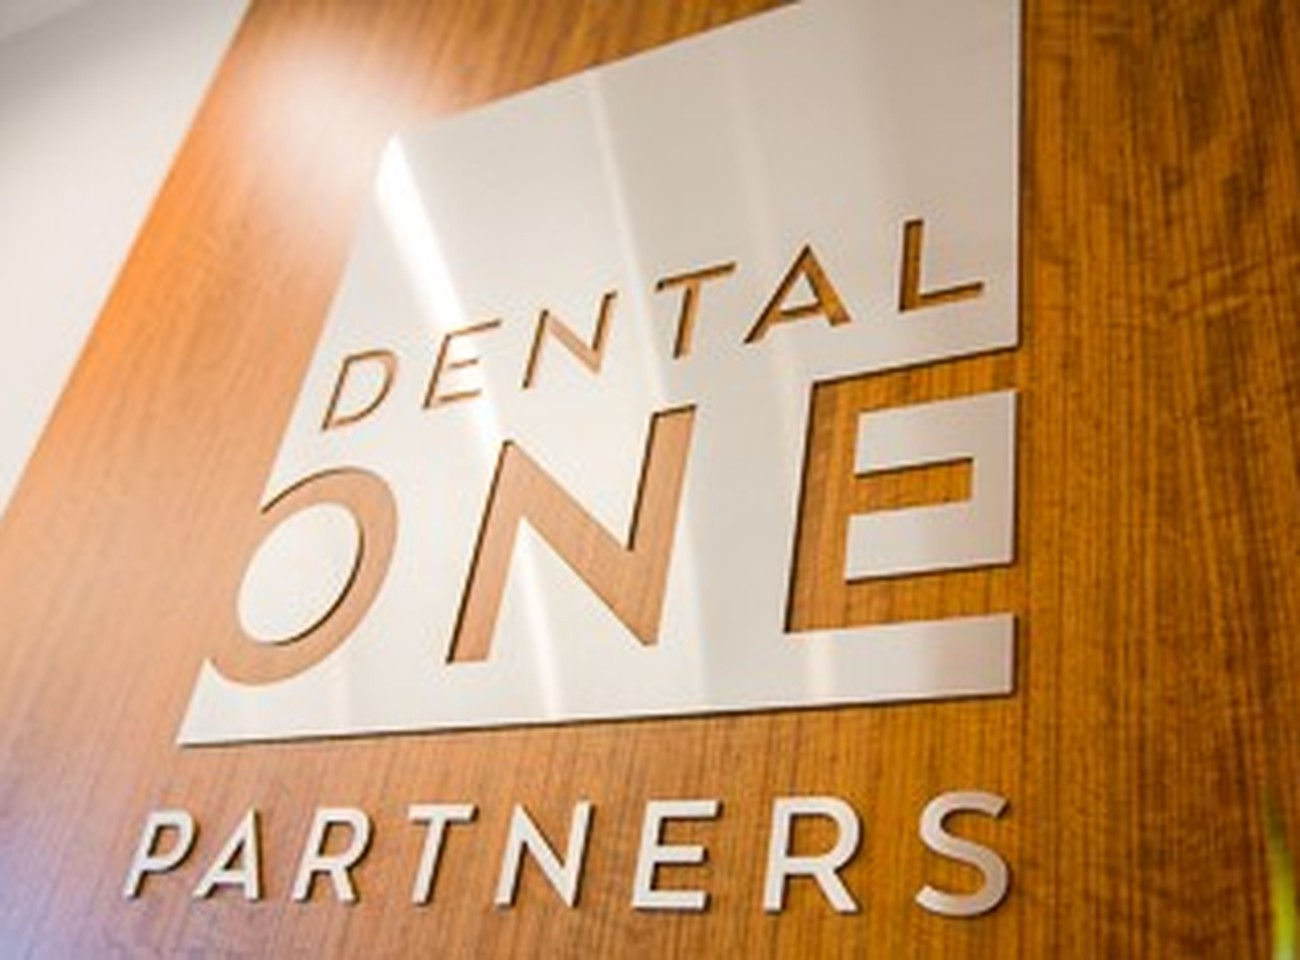 DentalOne Partners Careers